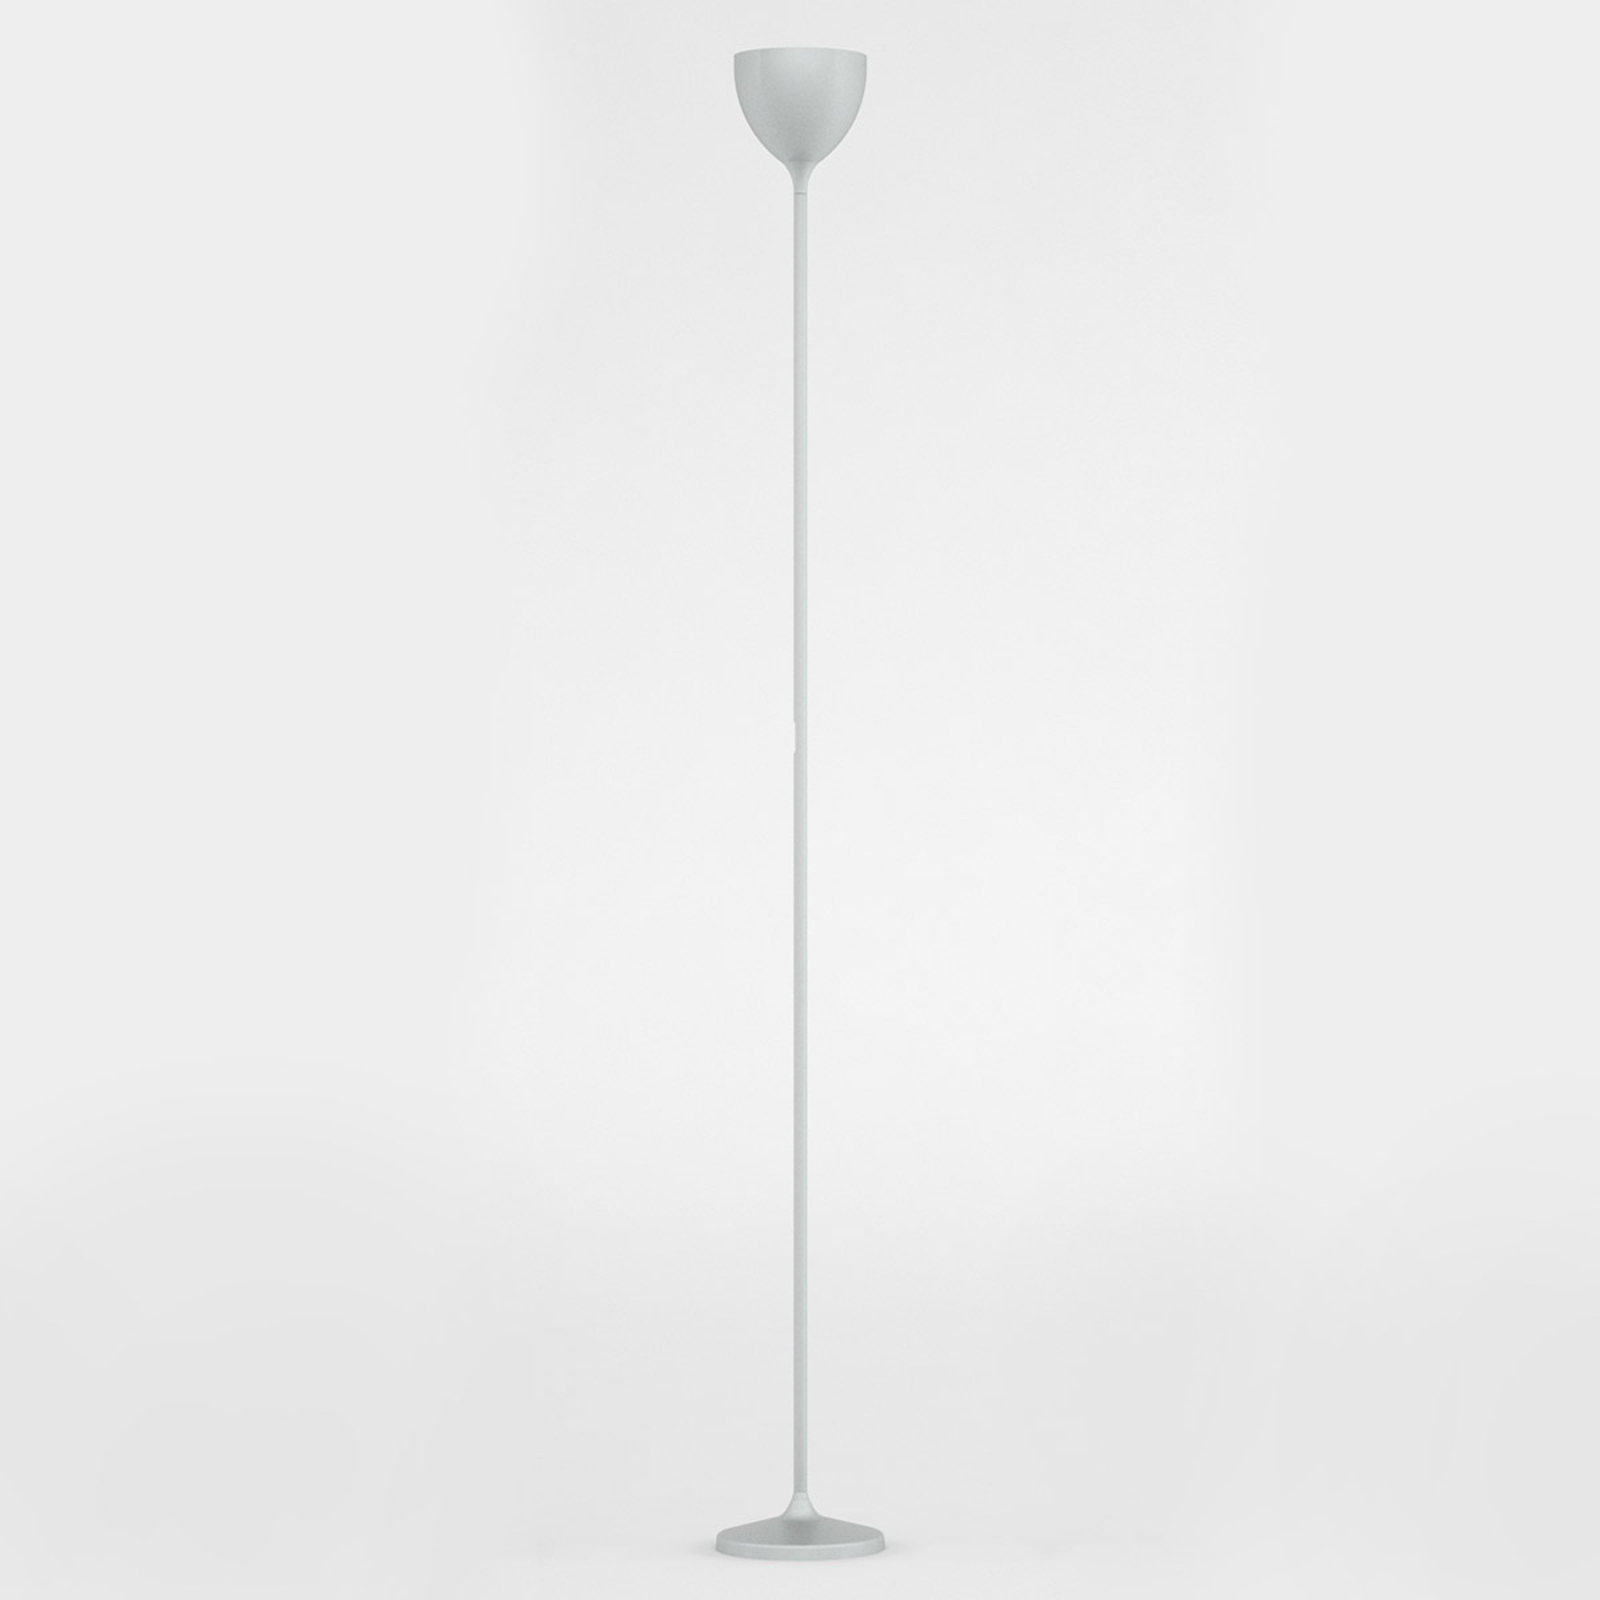 Rotaliana Drink LED-Stehleuchte, silber